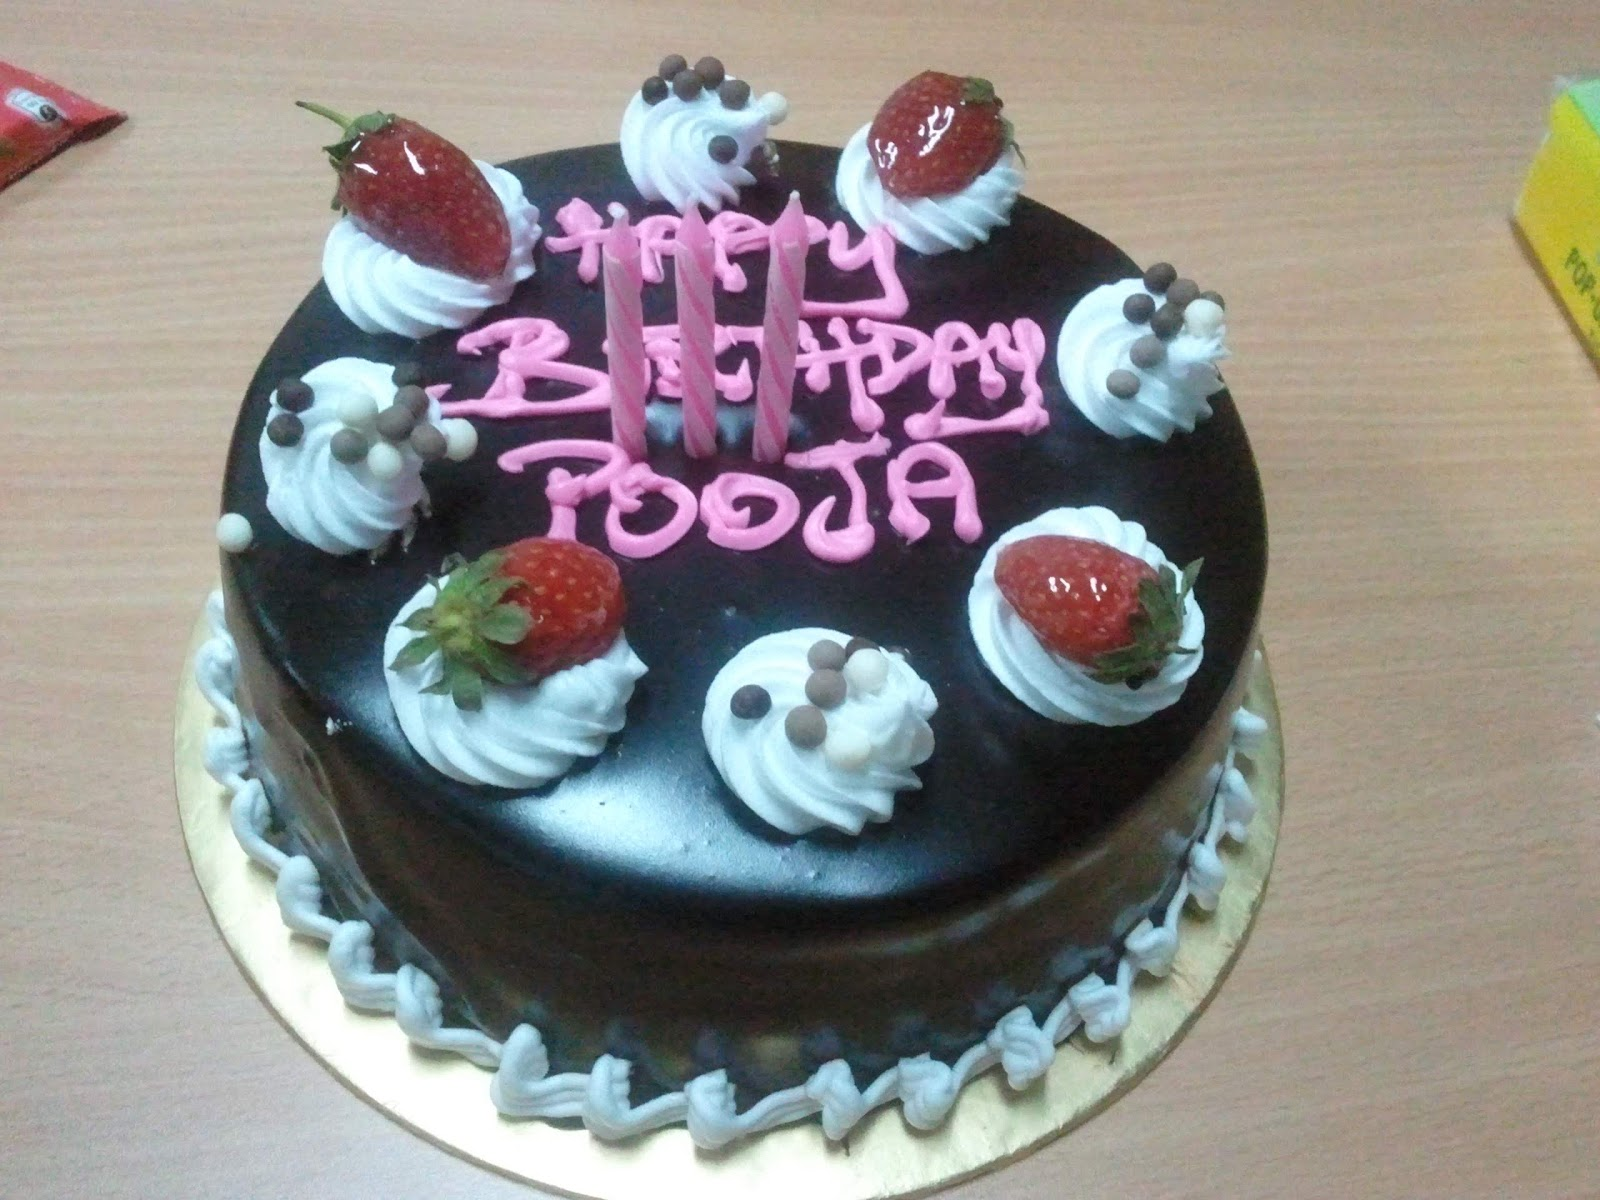 Cake Images For Pooja : ???????????: Pooja, Happy Birthday!